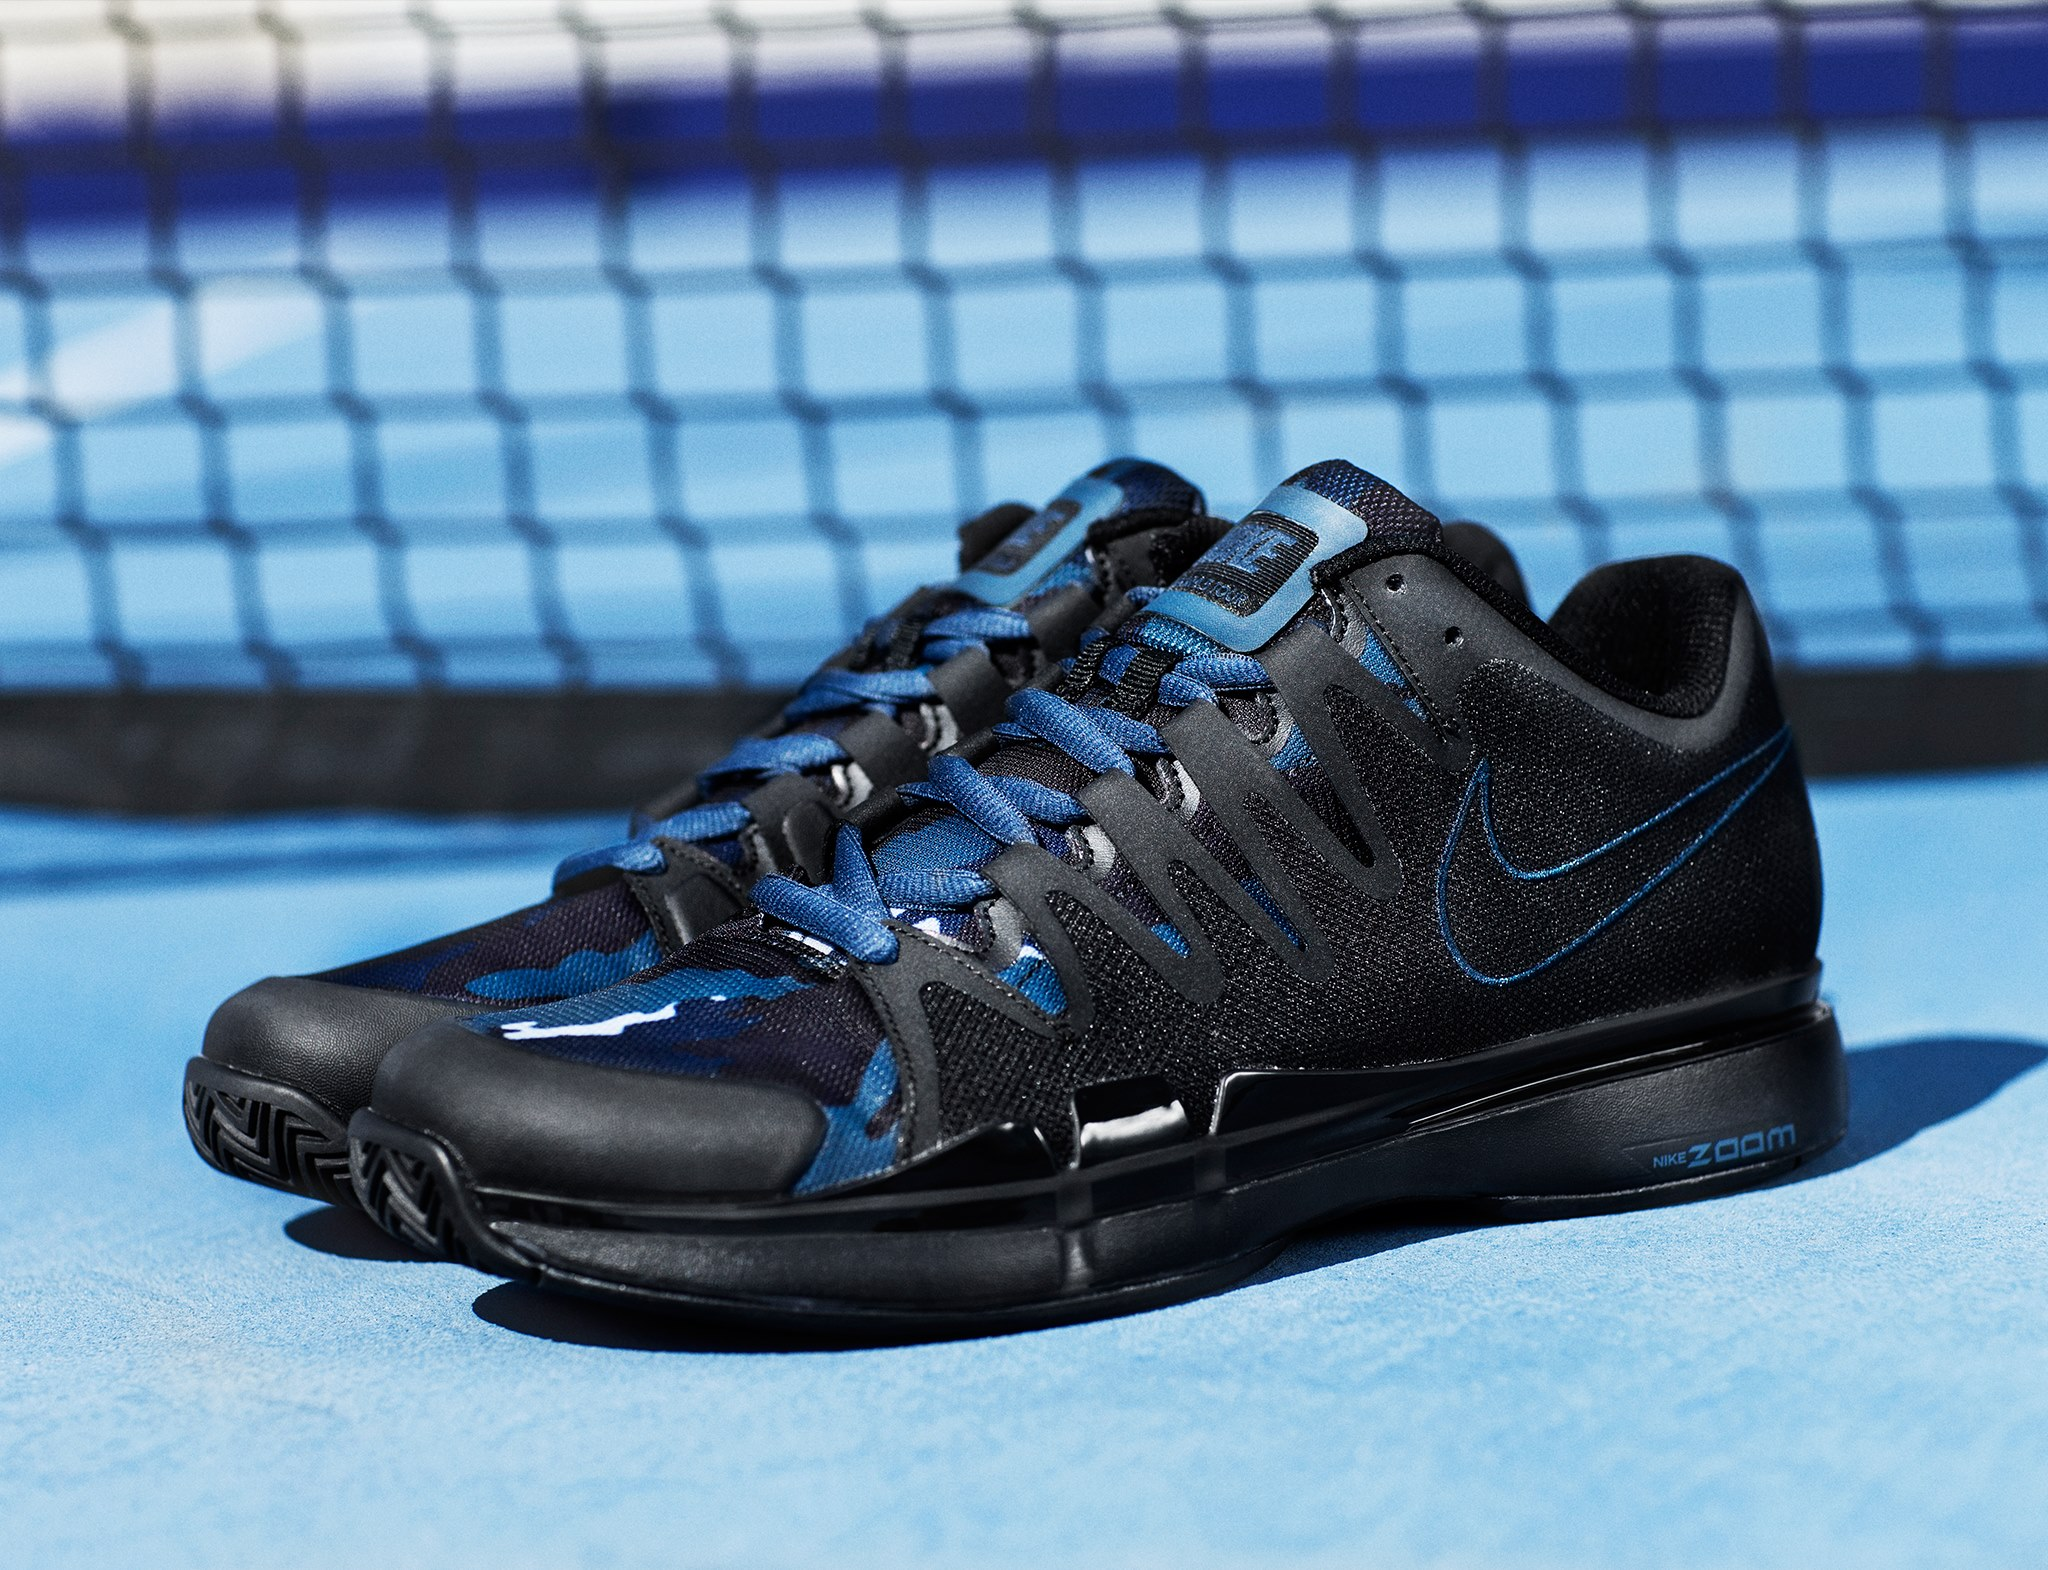 best sneakers 0afe2 18cc3 12189345_10156148576710332_5355982254296350018_o The Nike Zoom Vapor 9.5  Tour ...